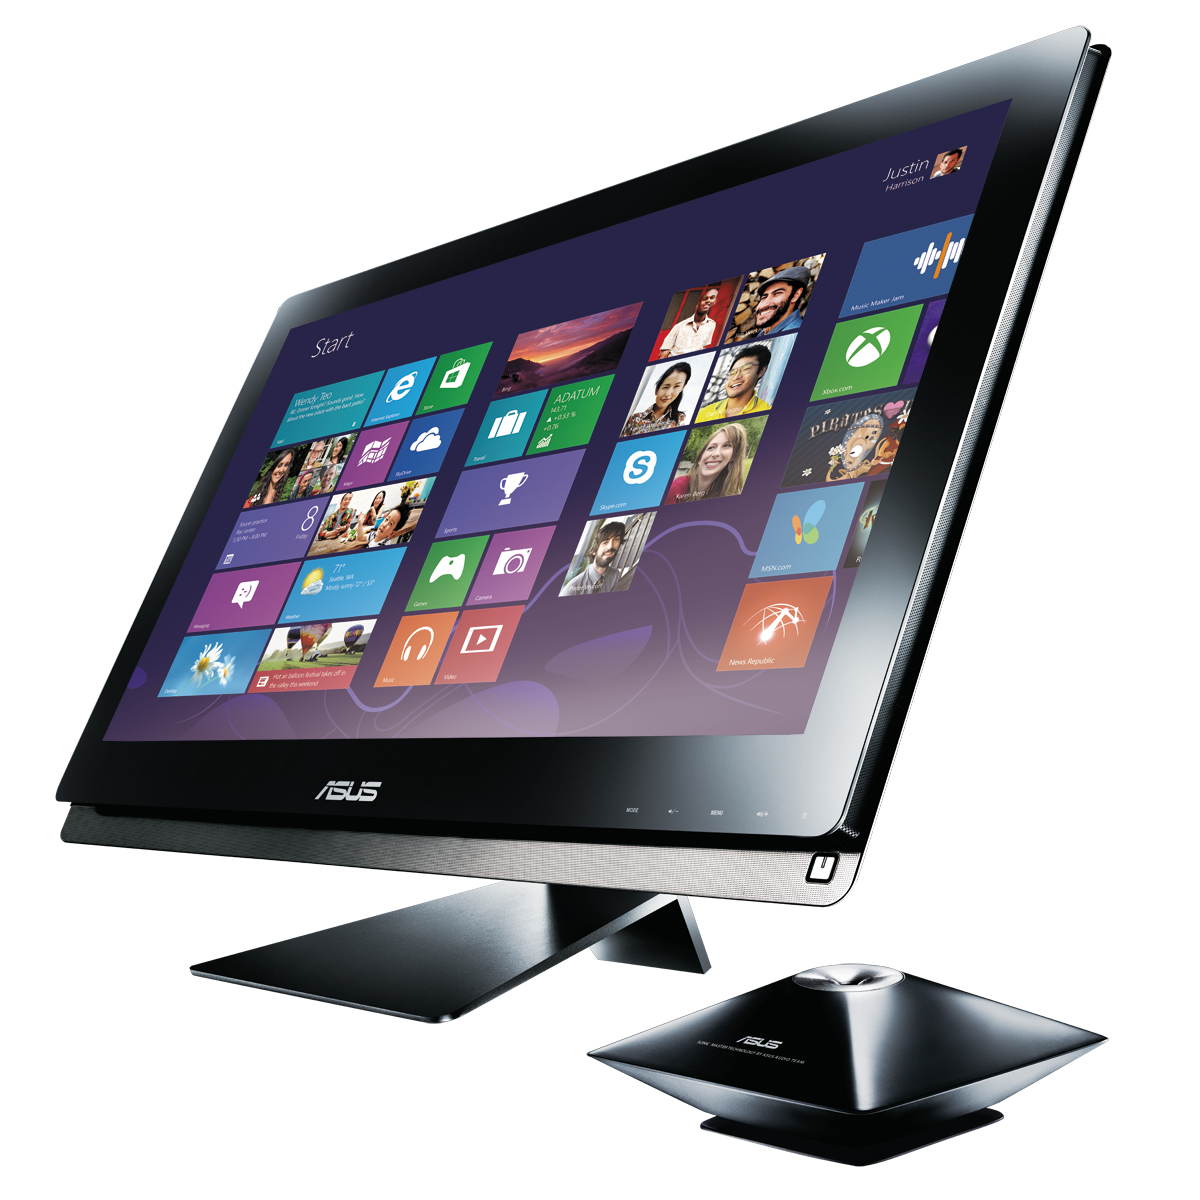 asus eeetop pc et2701inti b023k pc de bureau asus sur ldlc. Black Bedroom Furniture Sets. Home Design Ideas